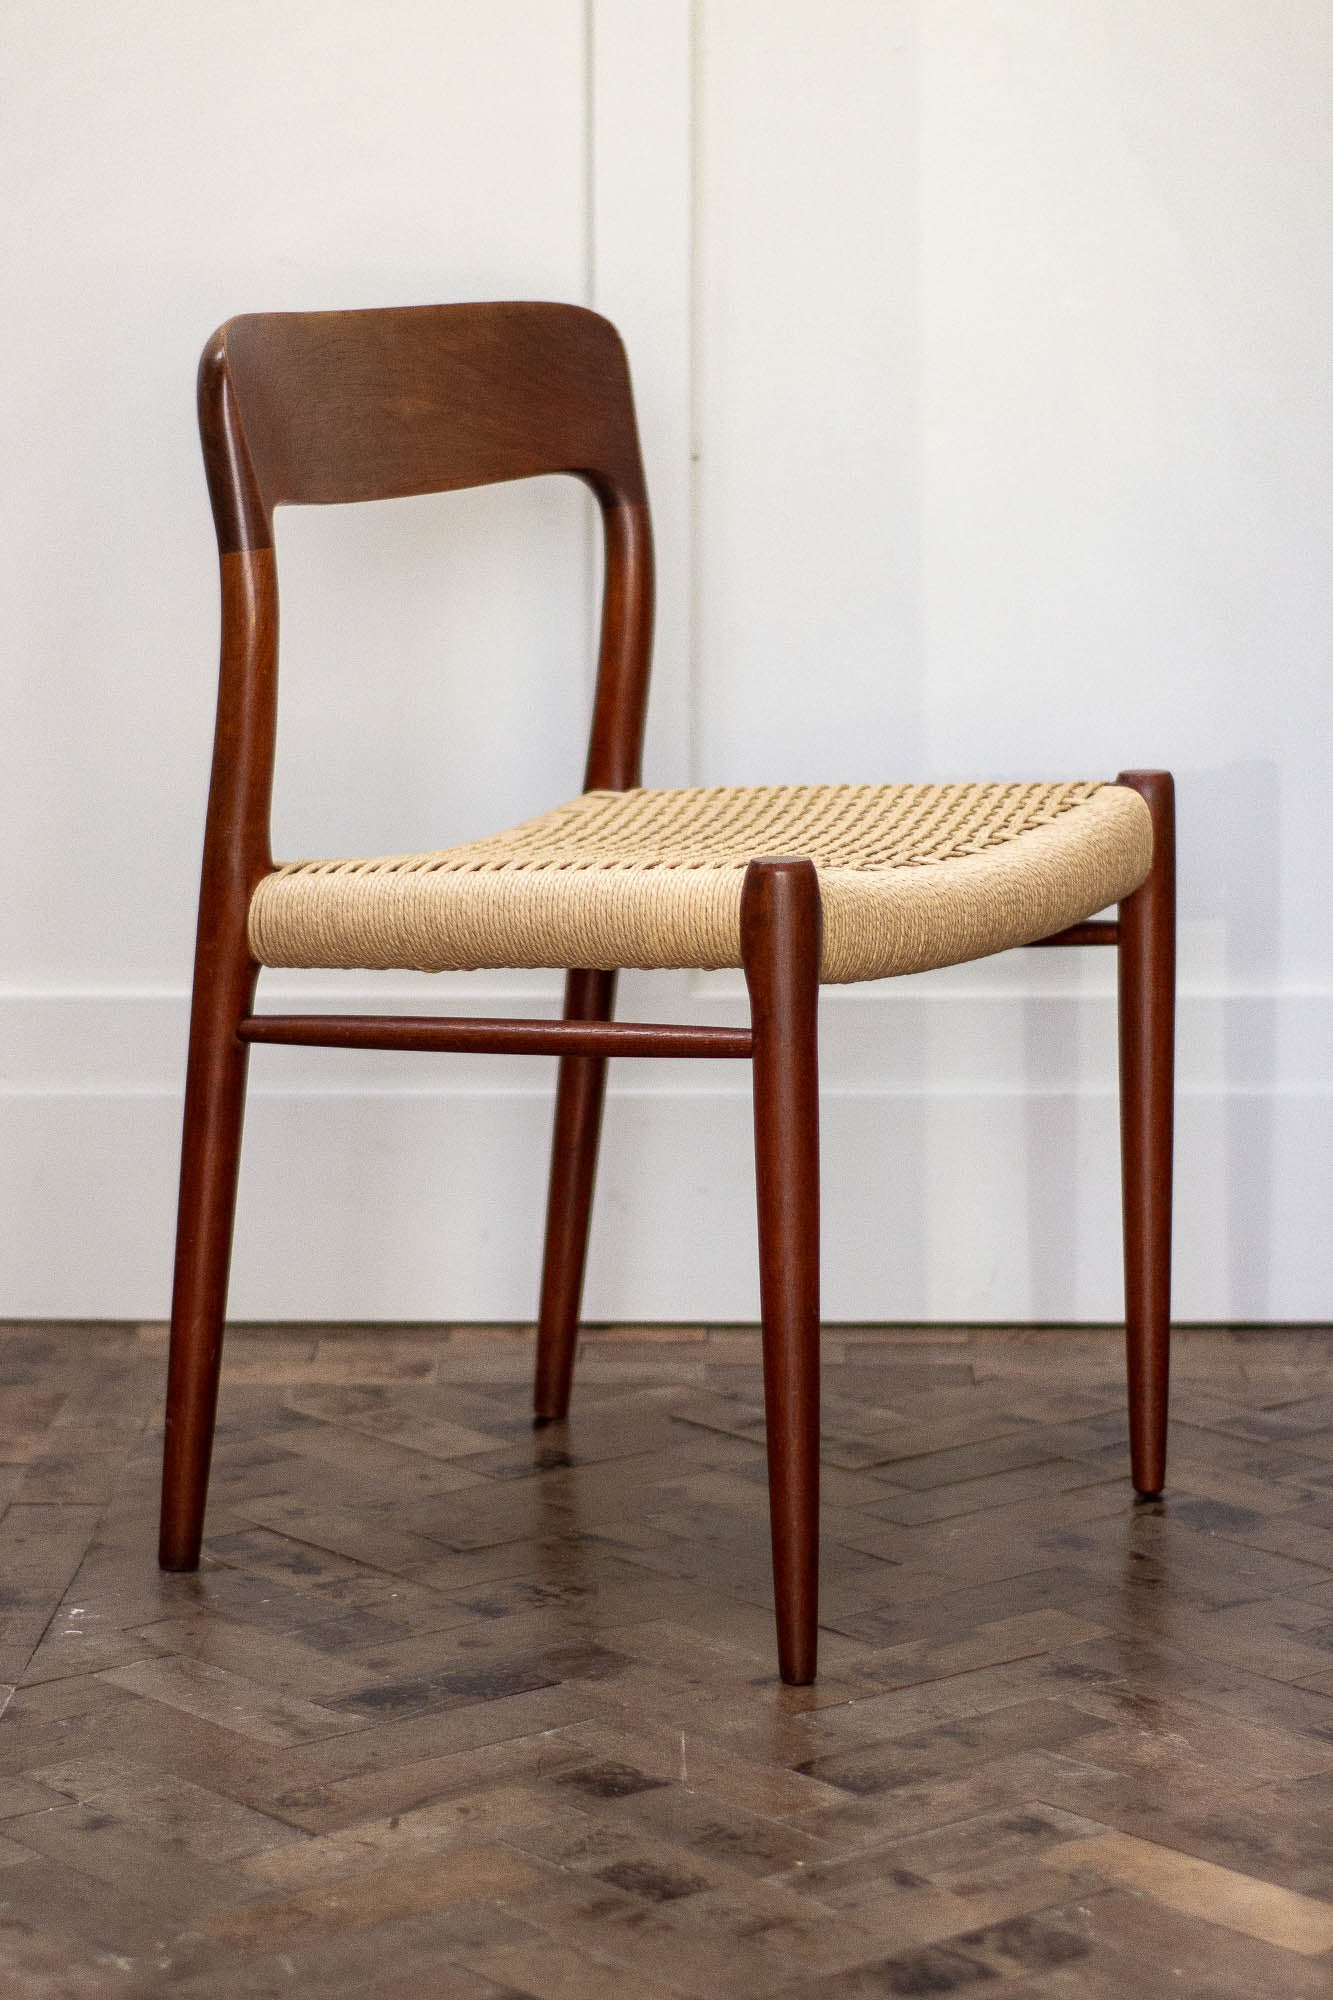 Efterstræbte Set of 12 Niels O Møller Dining Chairs in Teak, Danish RH-52